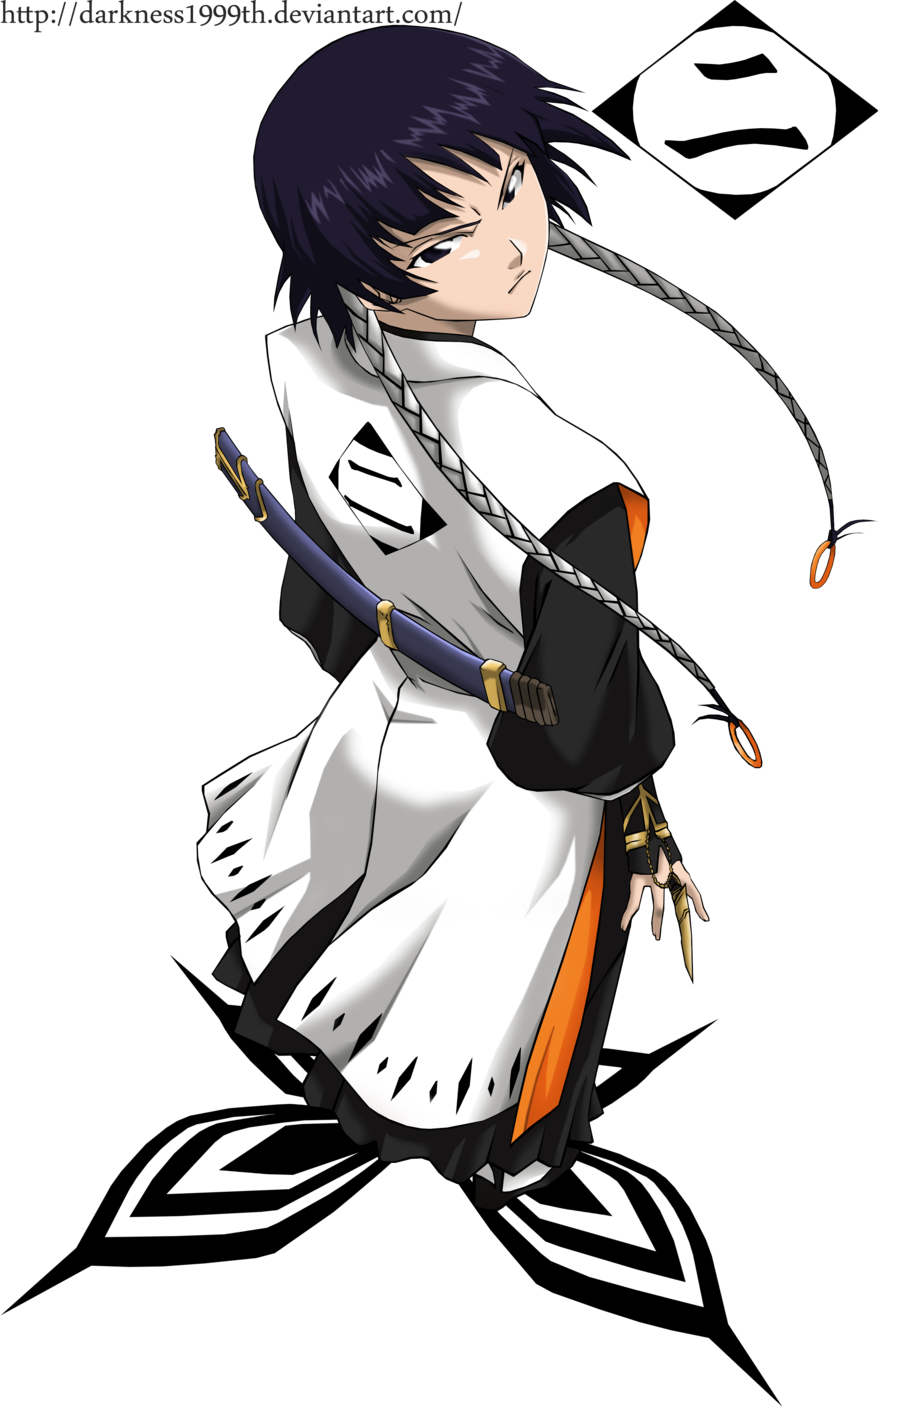 Pin By Haruno Haruka On Soi Fon Pinterest Bleach Anime Bleach